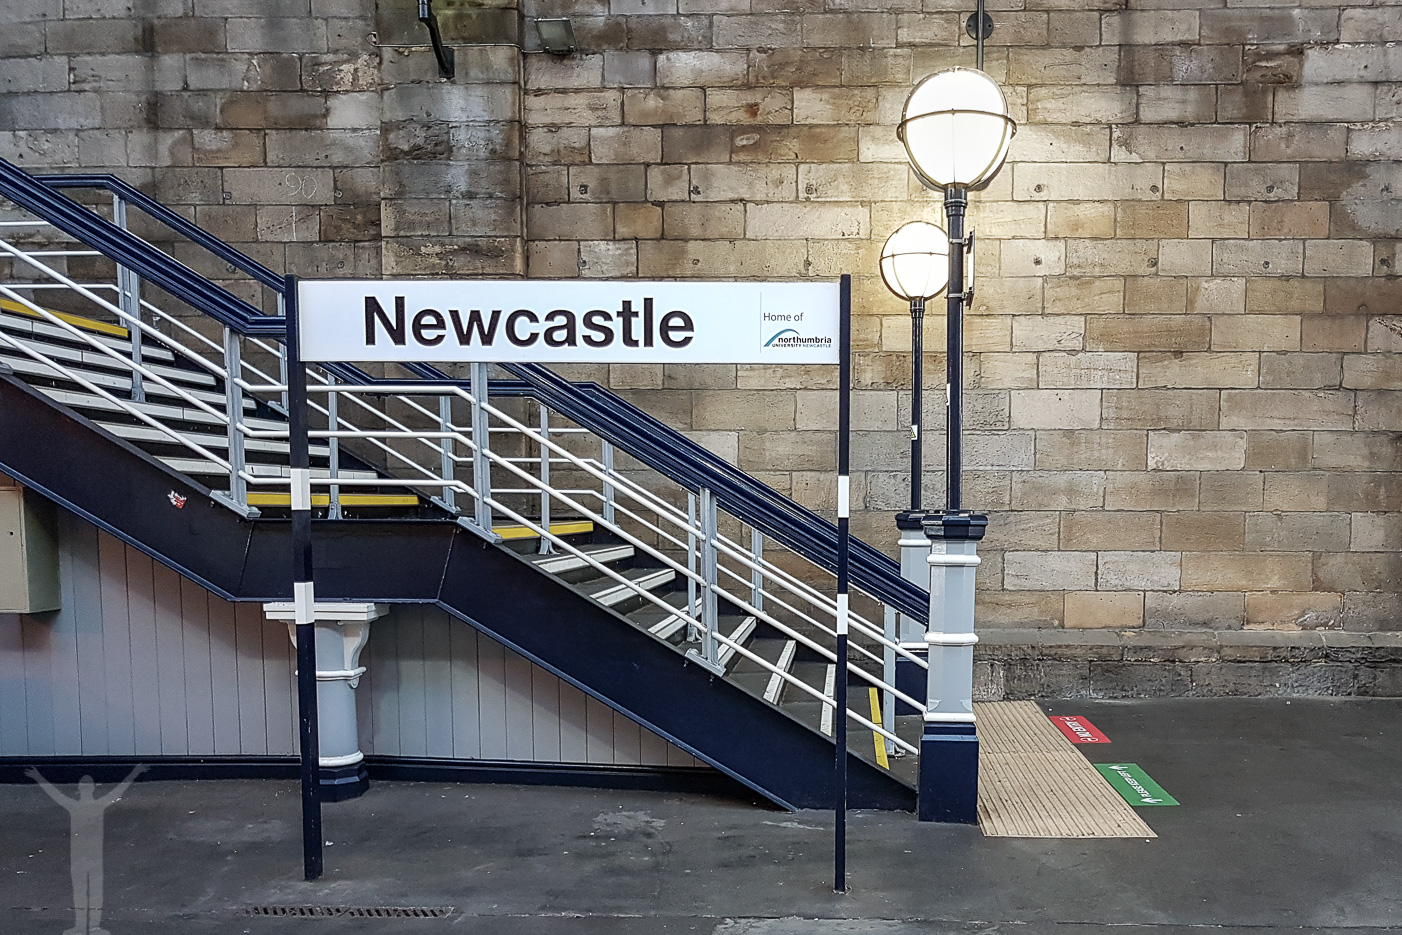 Newcastle centralstation